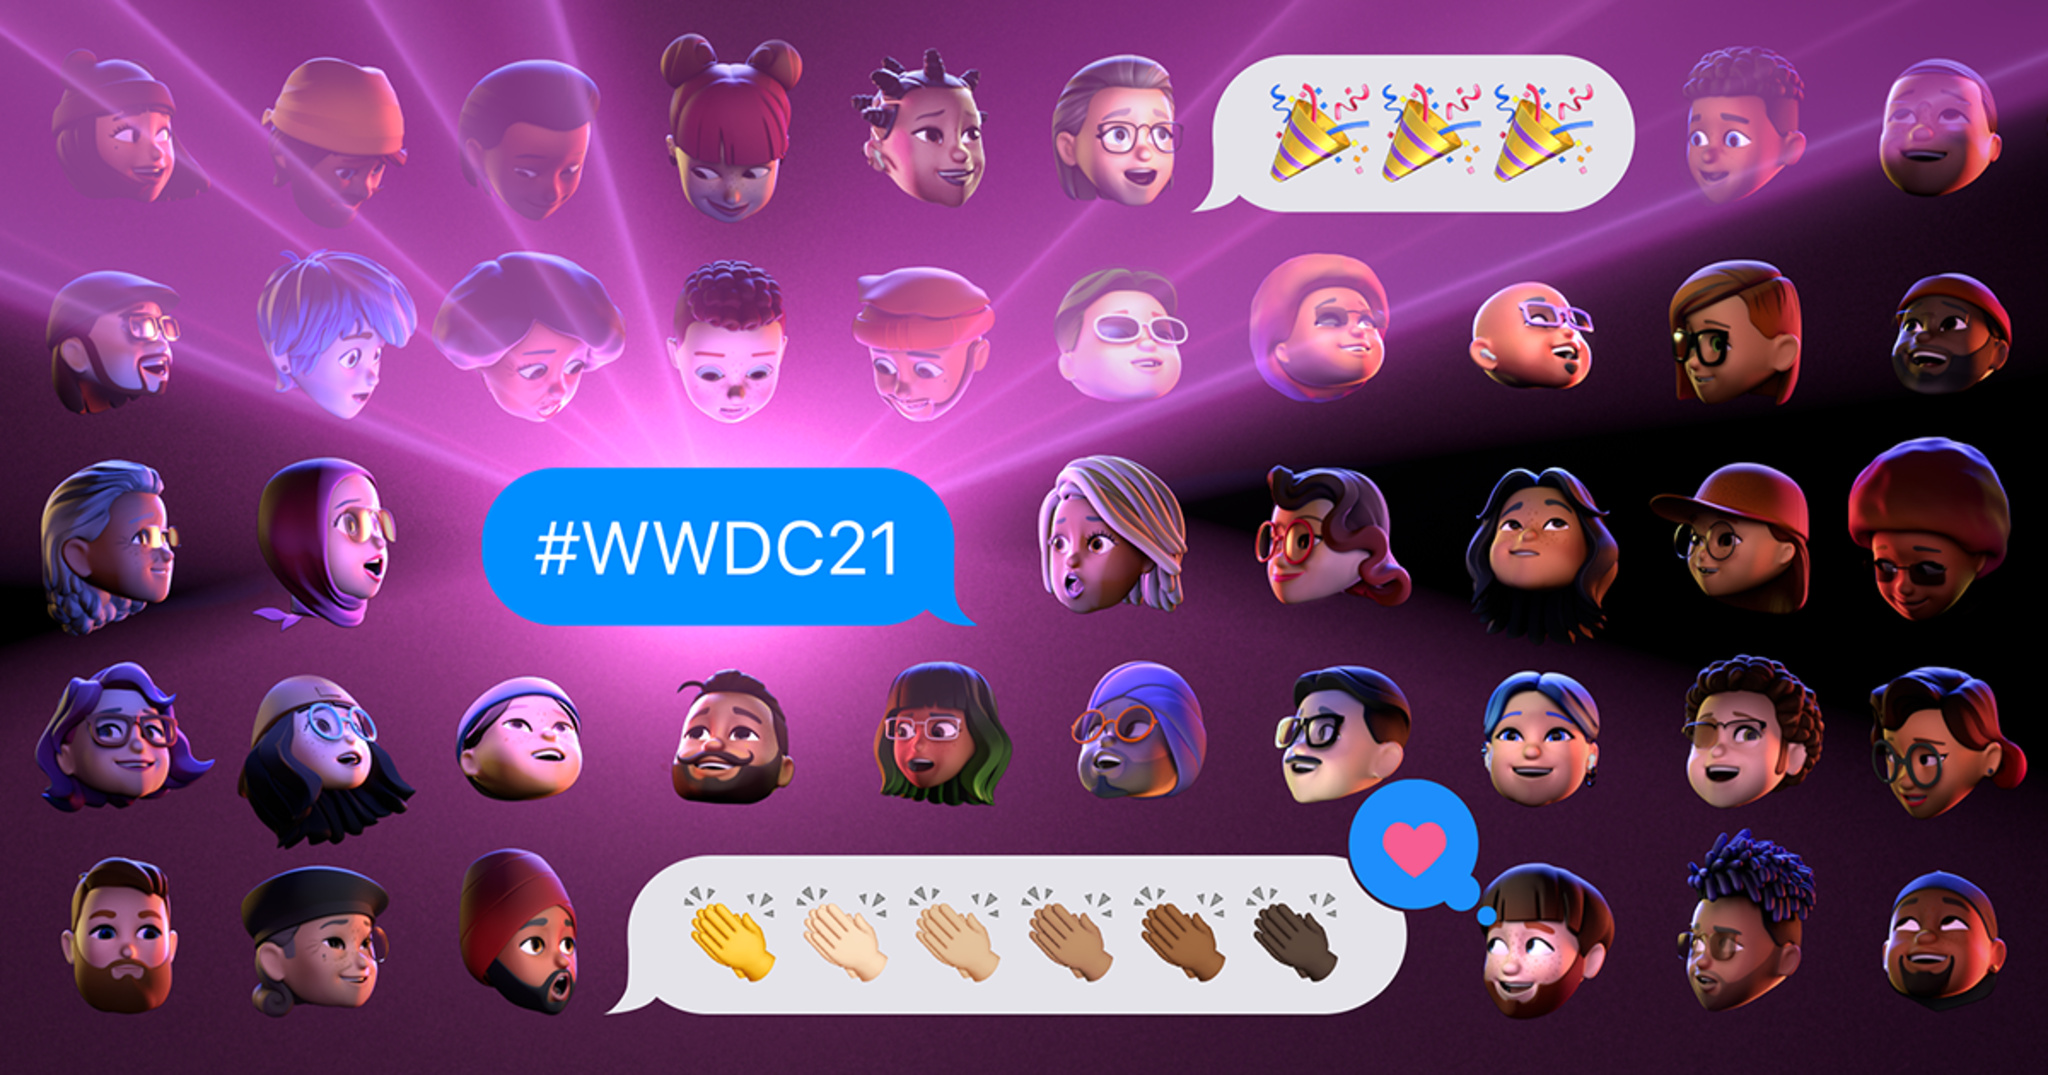 A wall of Memoji under a laser effect. 2 speech bubbles showing party popper and clapping hands emojis. Speech bubble in the center reads #WWDC21